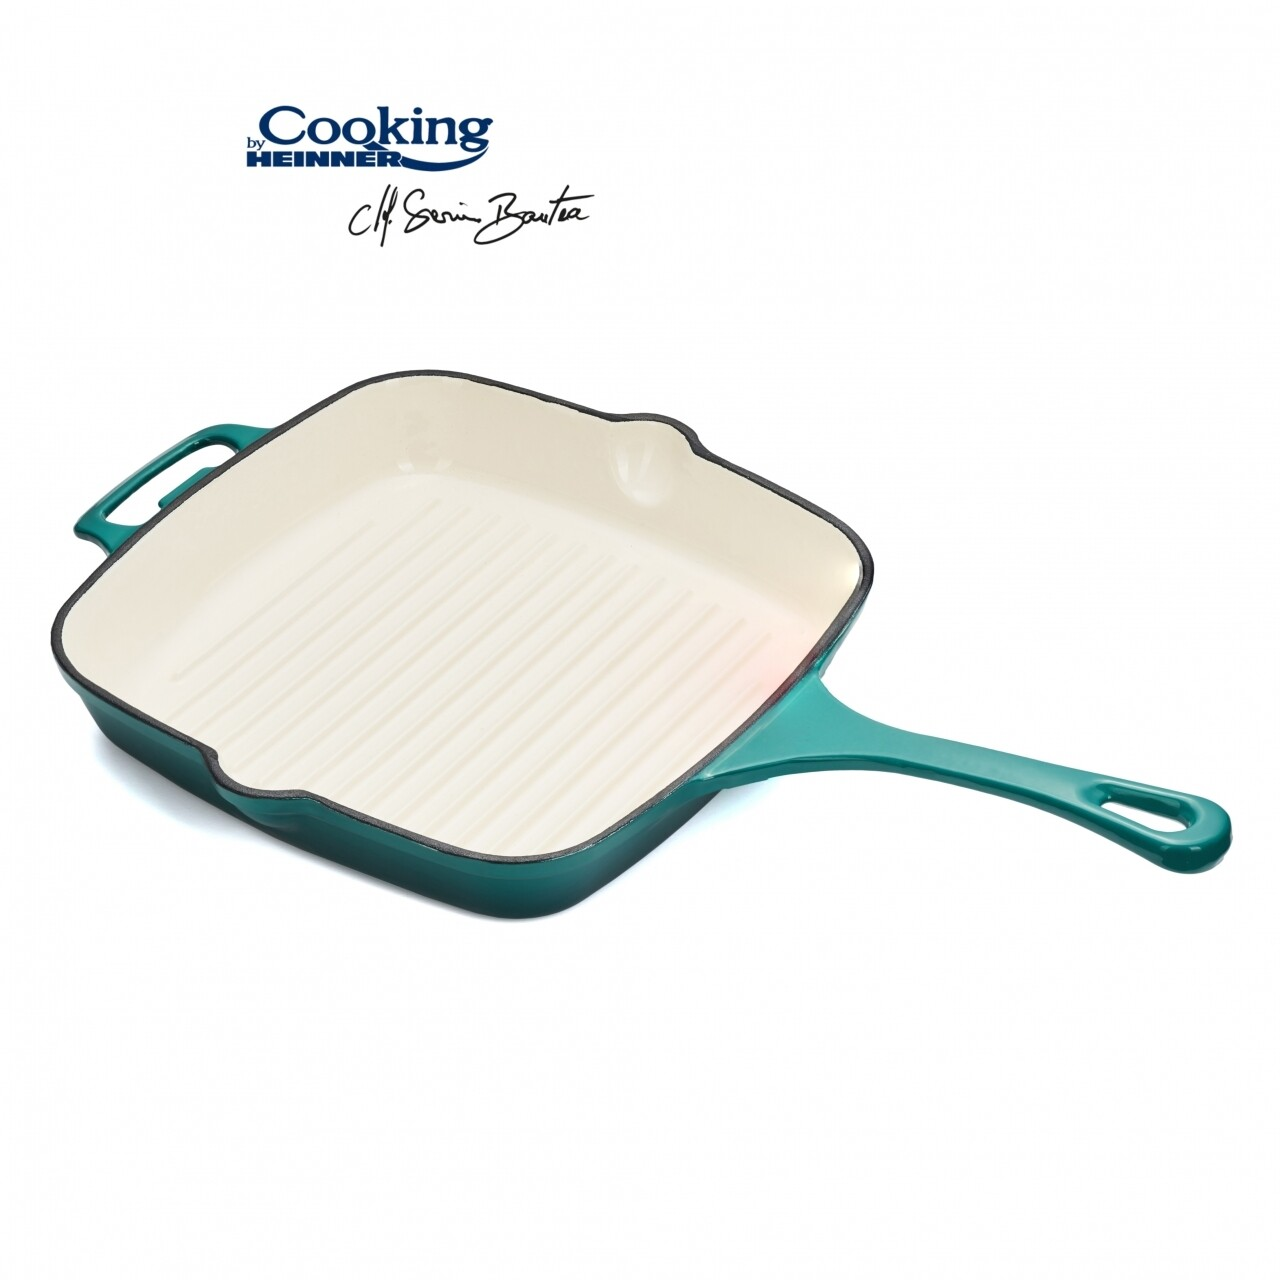 Tigaie grill emailata, Cooking by Heinner, 26.5 x 26.5 x 5 cm, fonta, bej si bleu